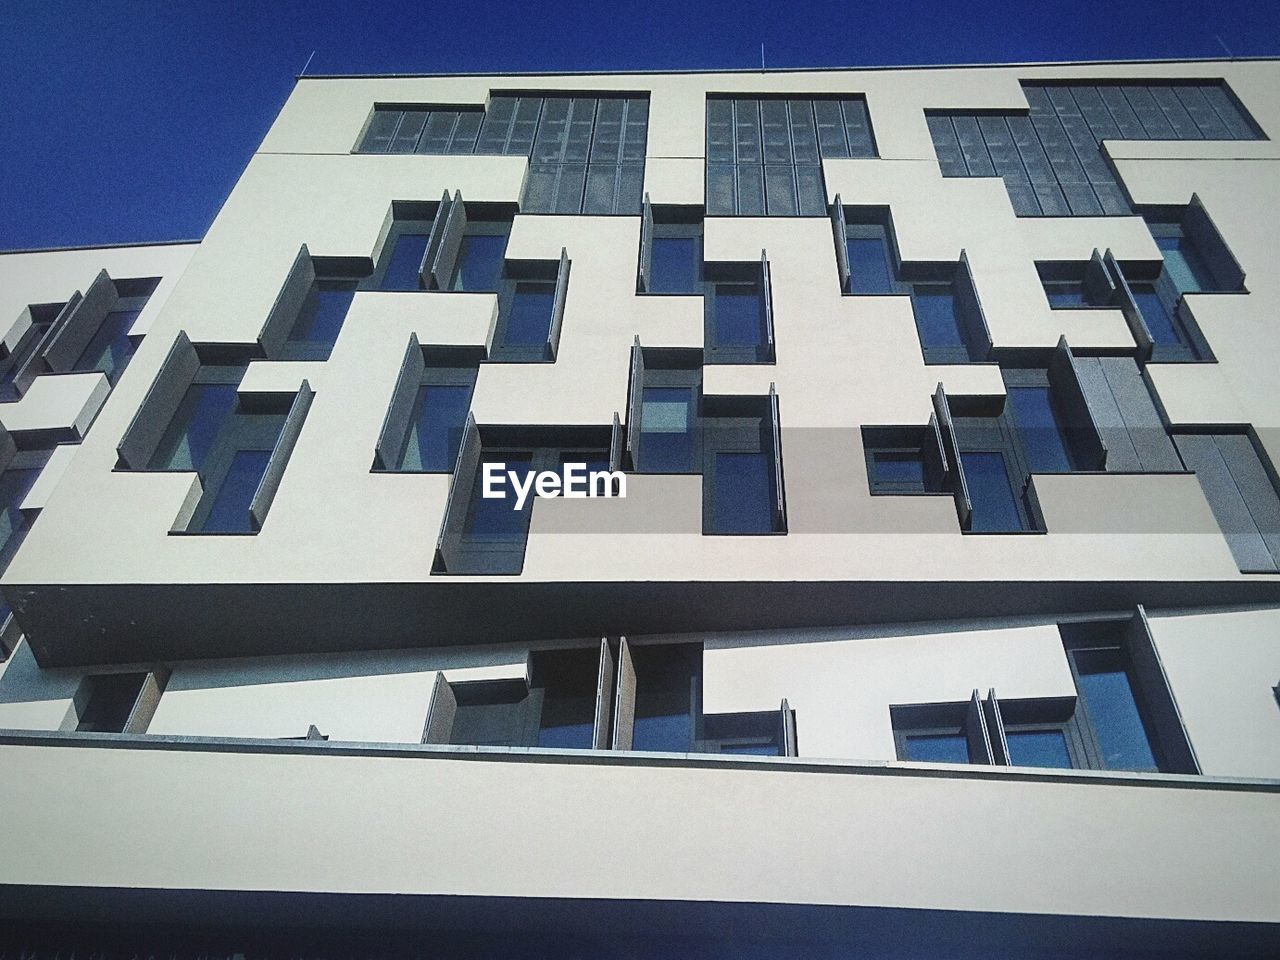 architecture, building exterior, built structure, low angle view, window, outdoors, no people, blue, day, modern, city, close-up, sky